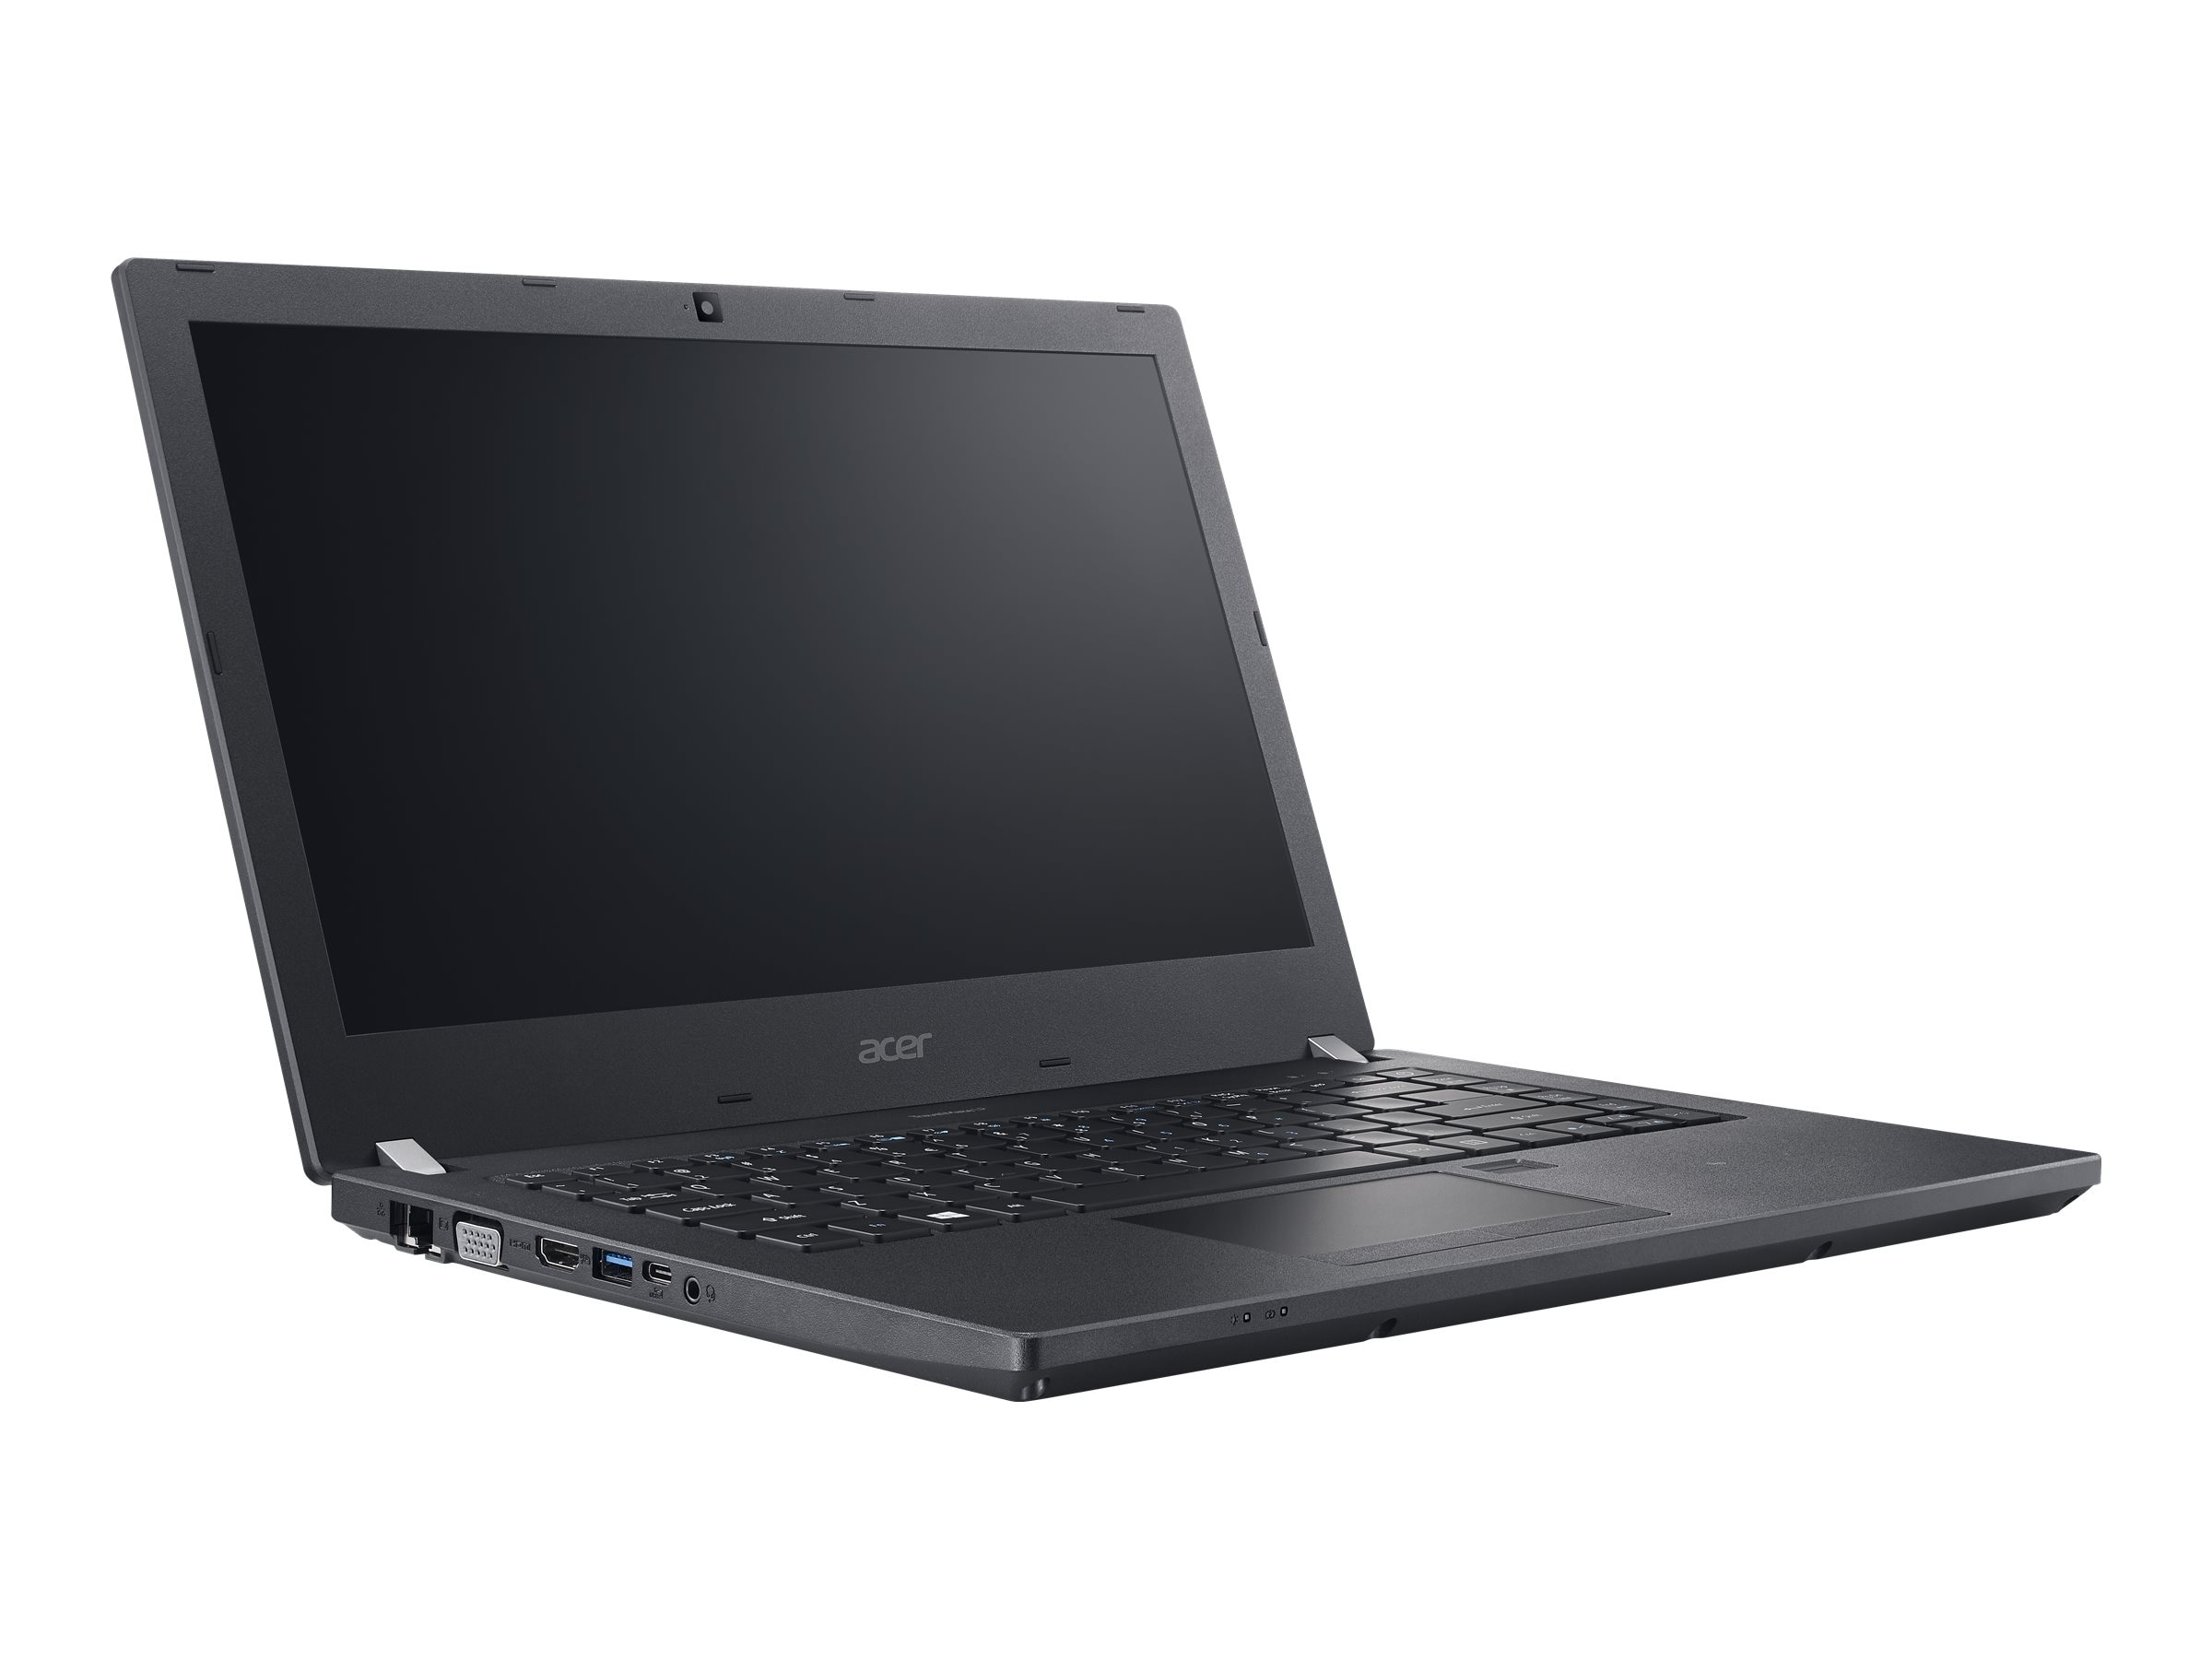 Acer NX.VDKAA.009 Image 3